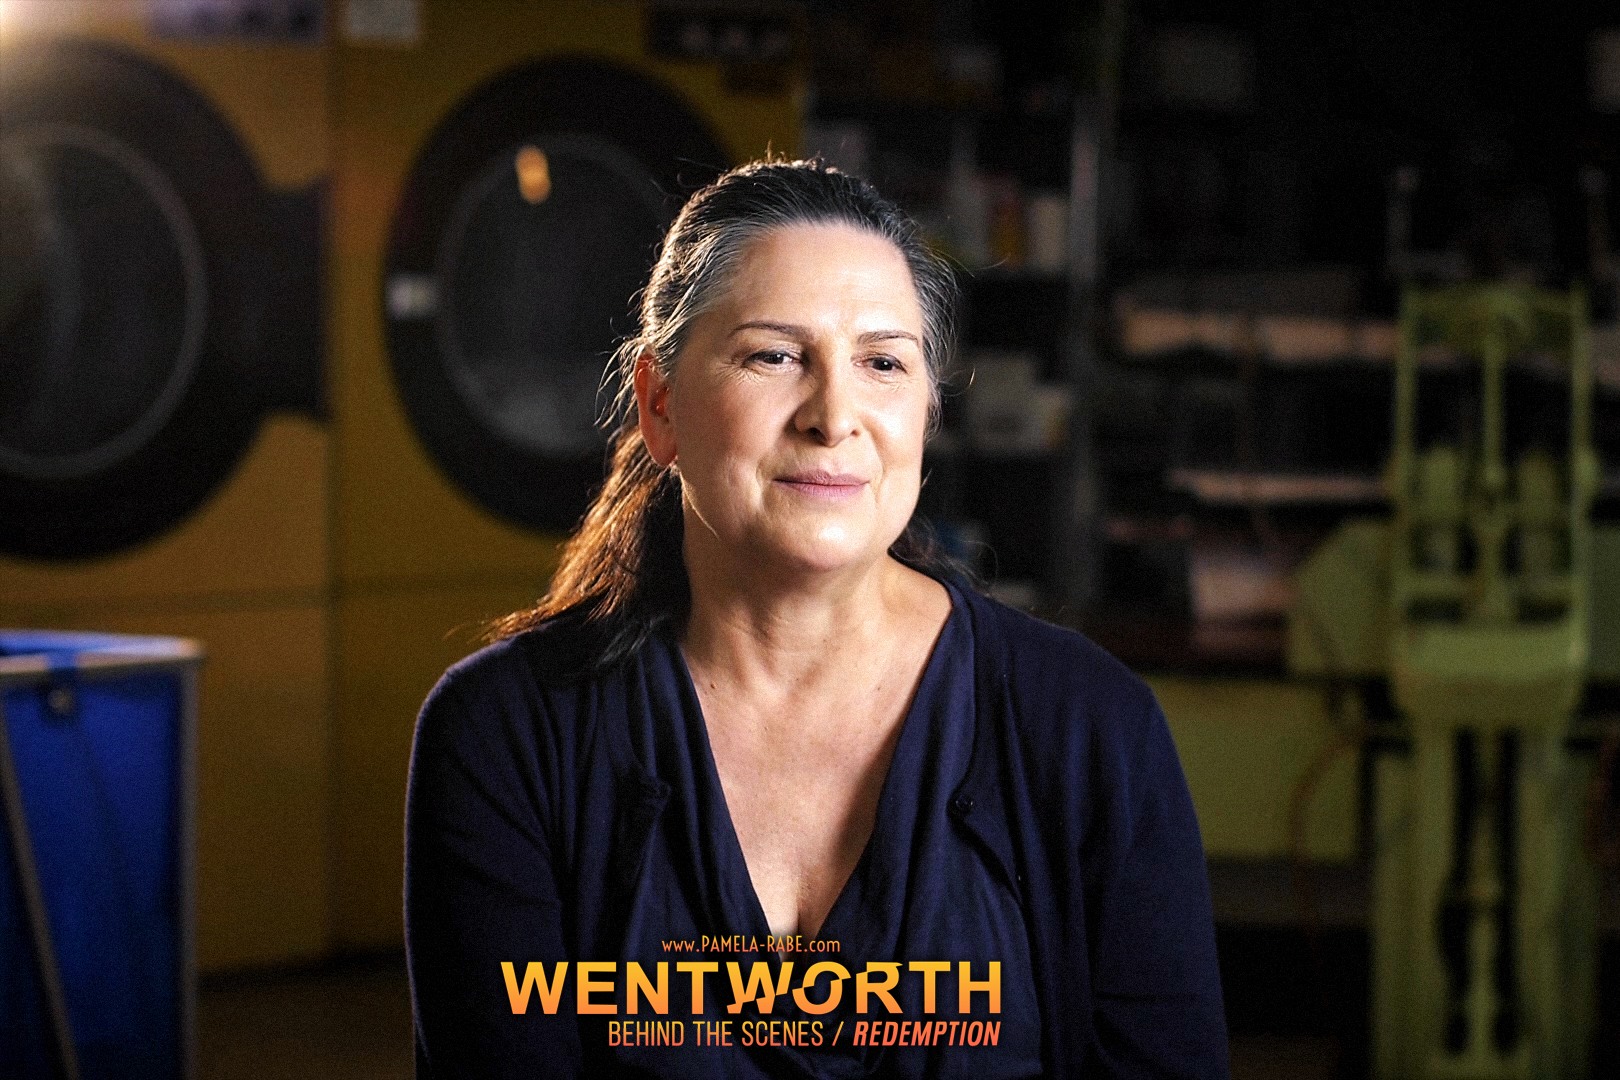 Pamela Rabe | Wentworth Season 8 | Behind the Scenes